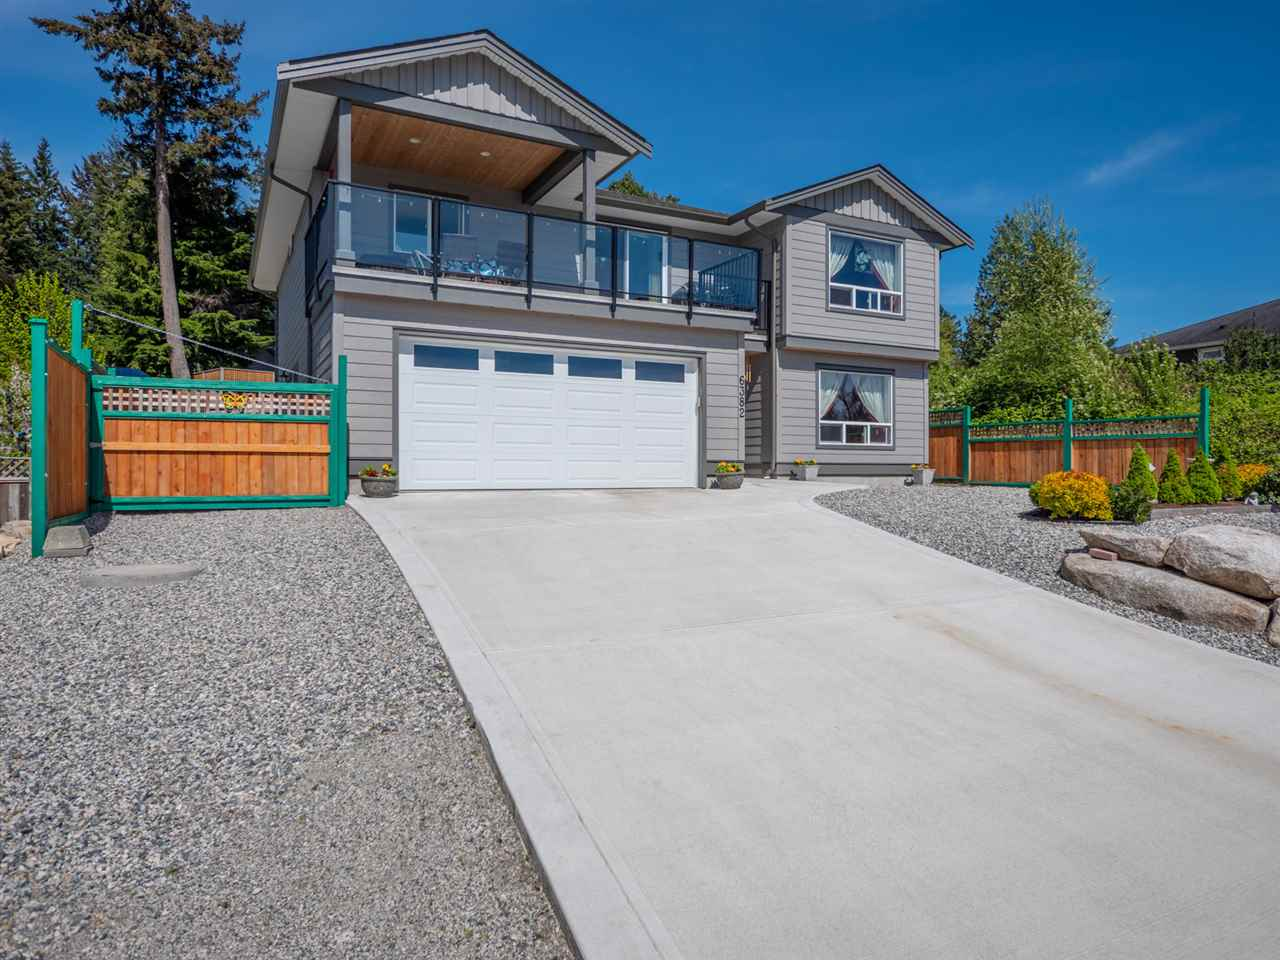 6382 SAMRON ROAD - Sechelt District House/Single Family for sale, 4 Bedrooms (R2532984)